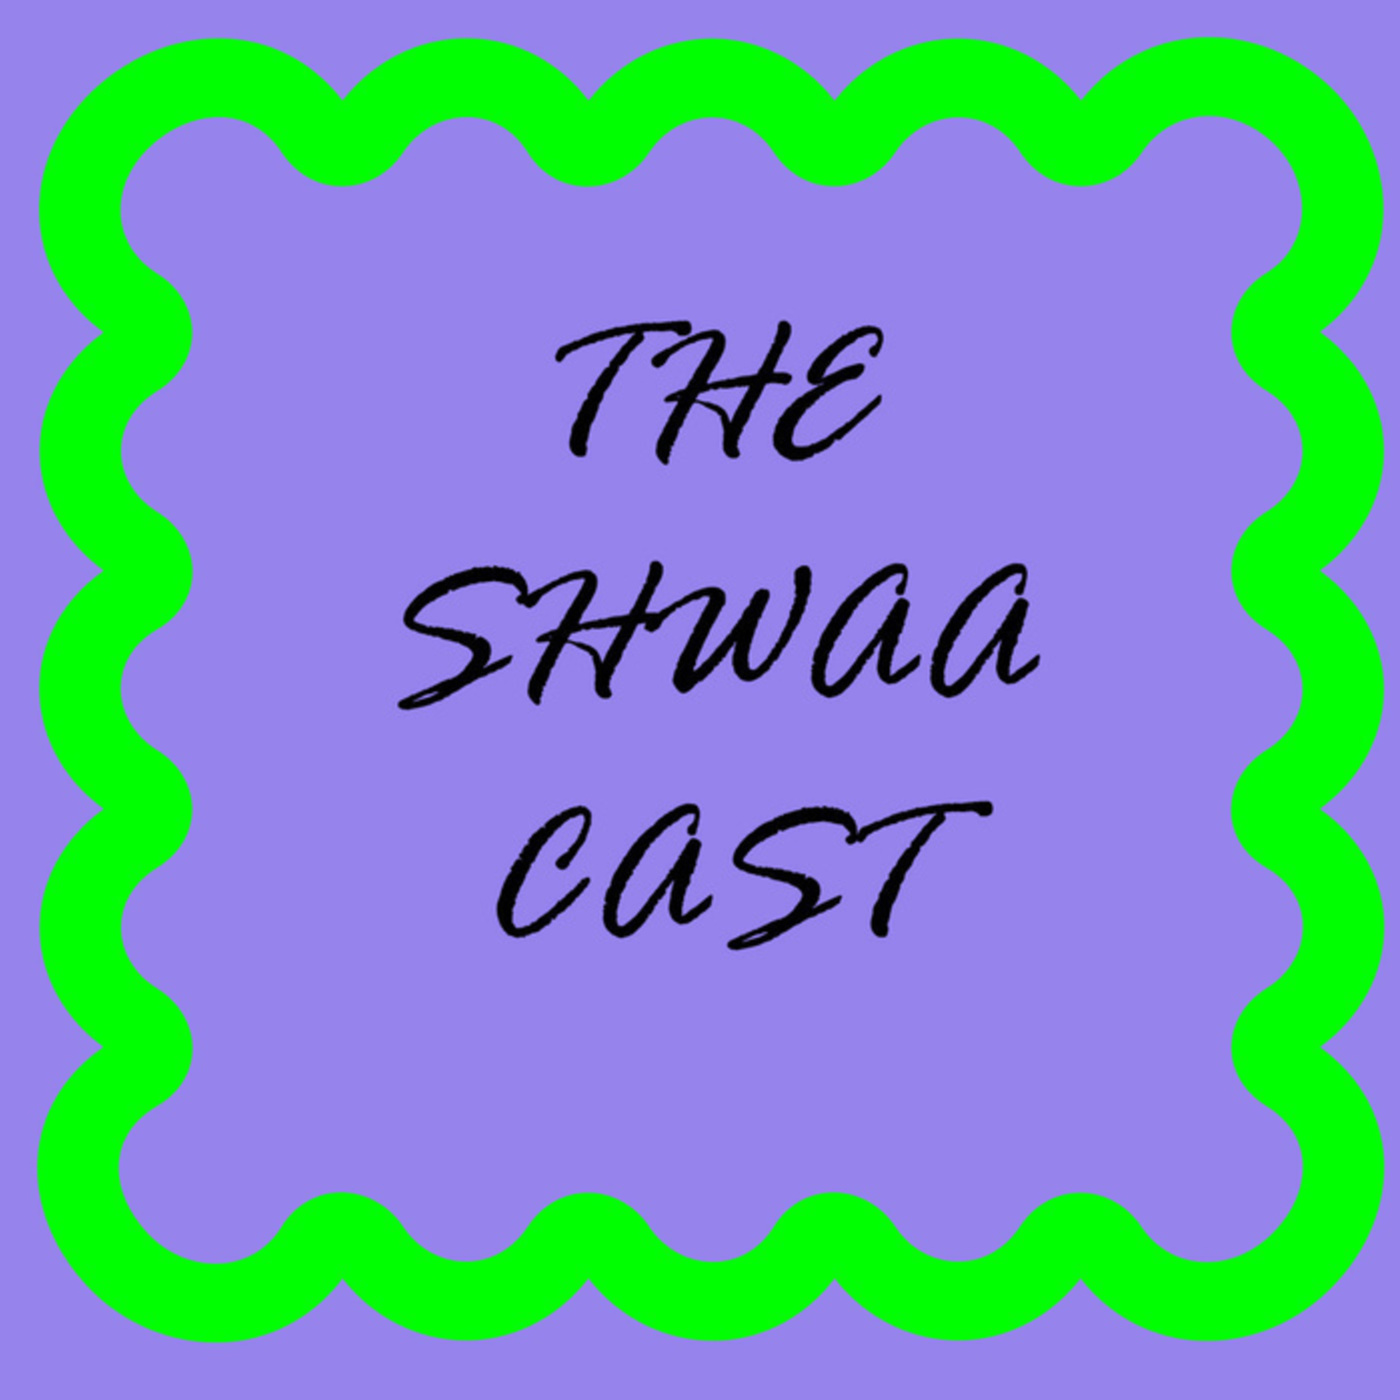 The Shwaa Cast | Listen Free on Castbox